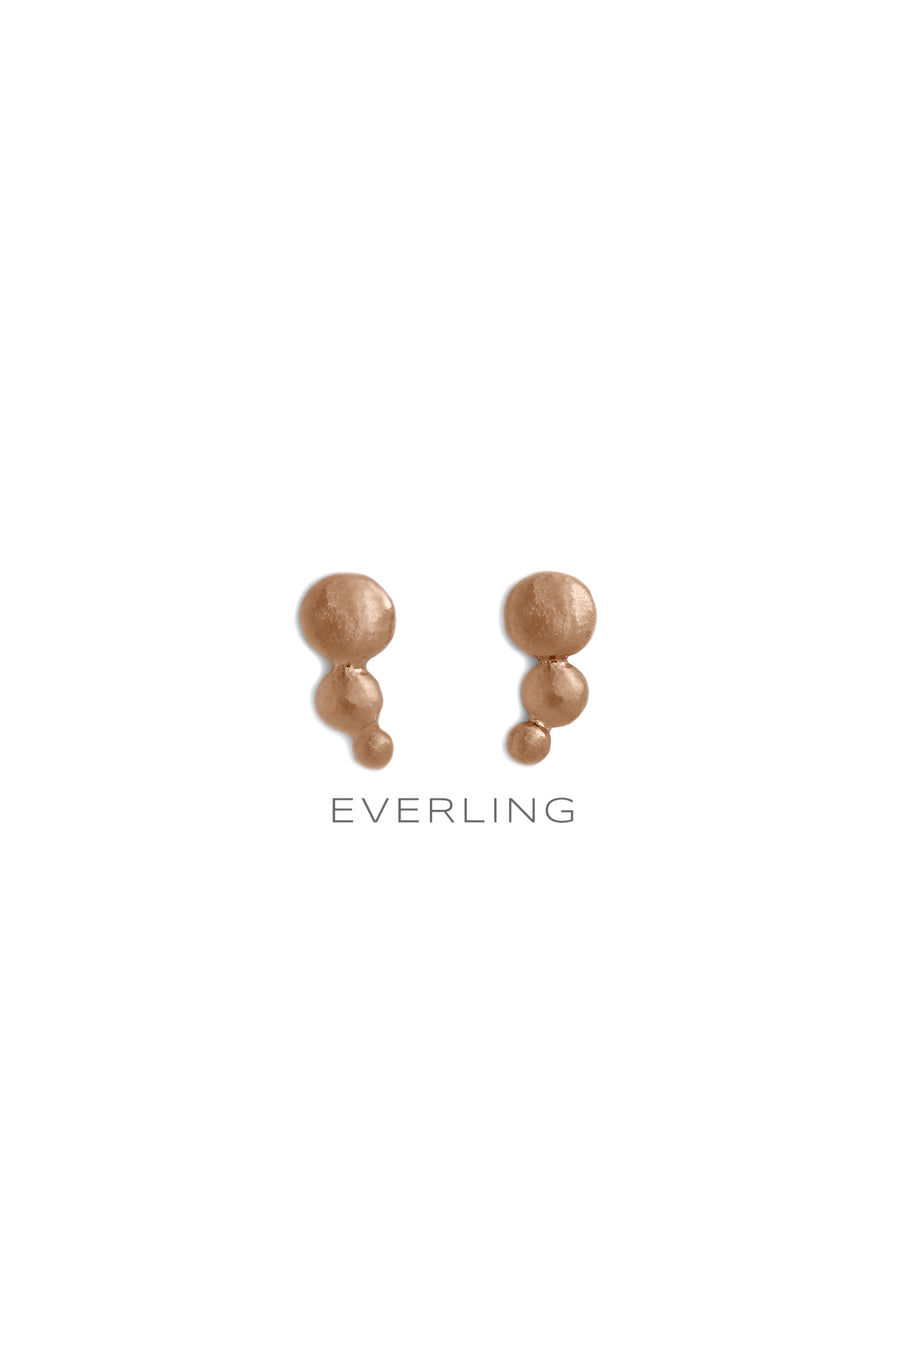 Recycled 14k Rose Gold Textured Tapering Pod Earring Studs. www.EverlingJewelry.com